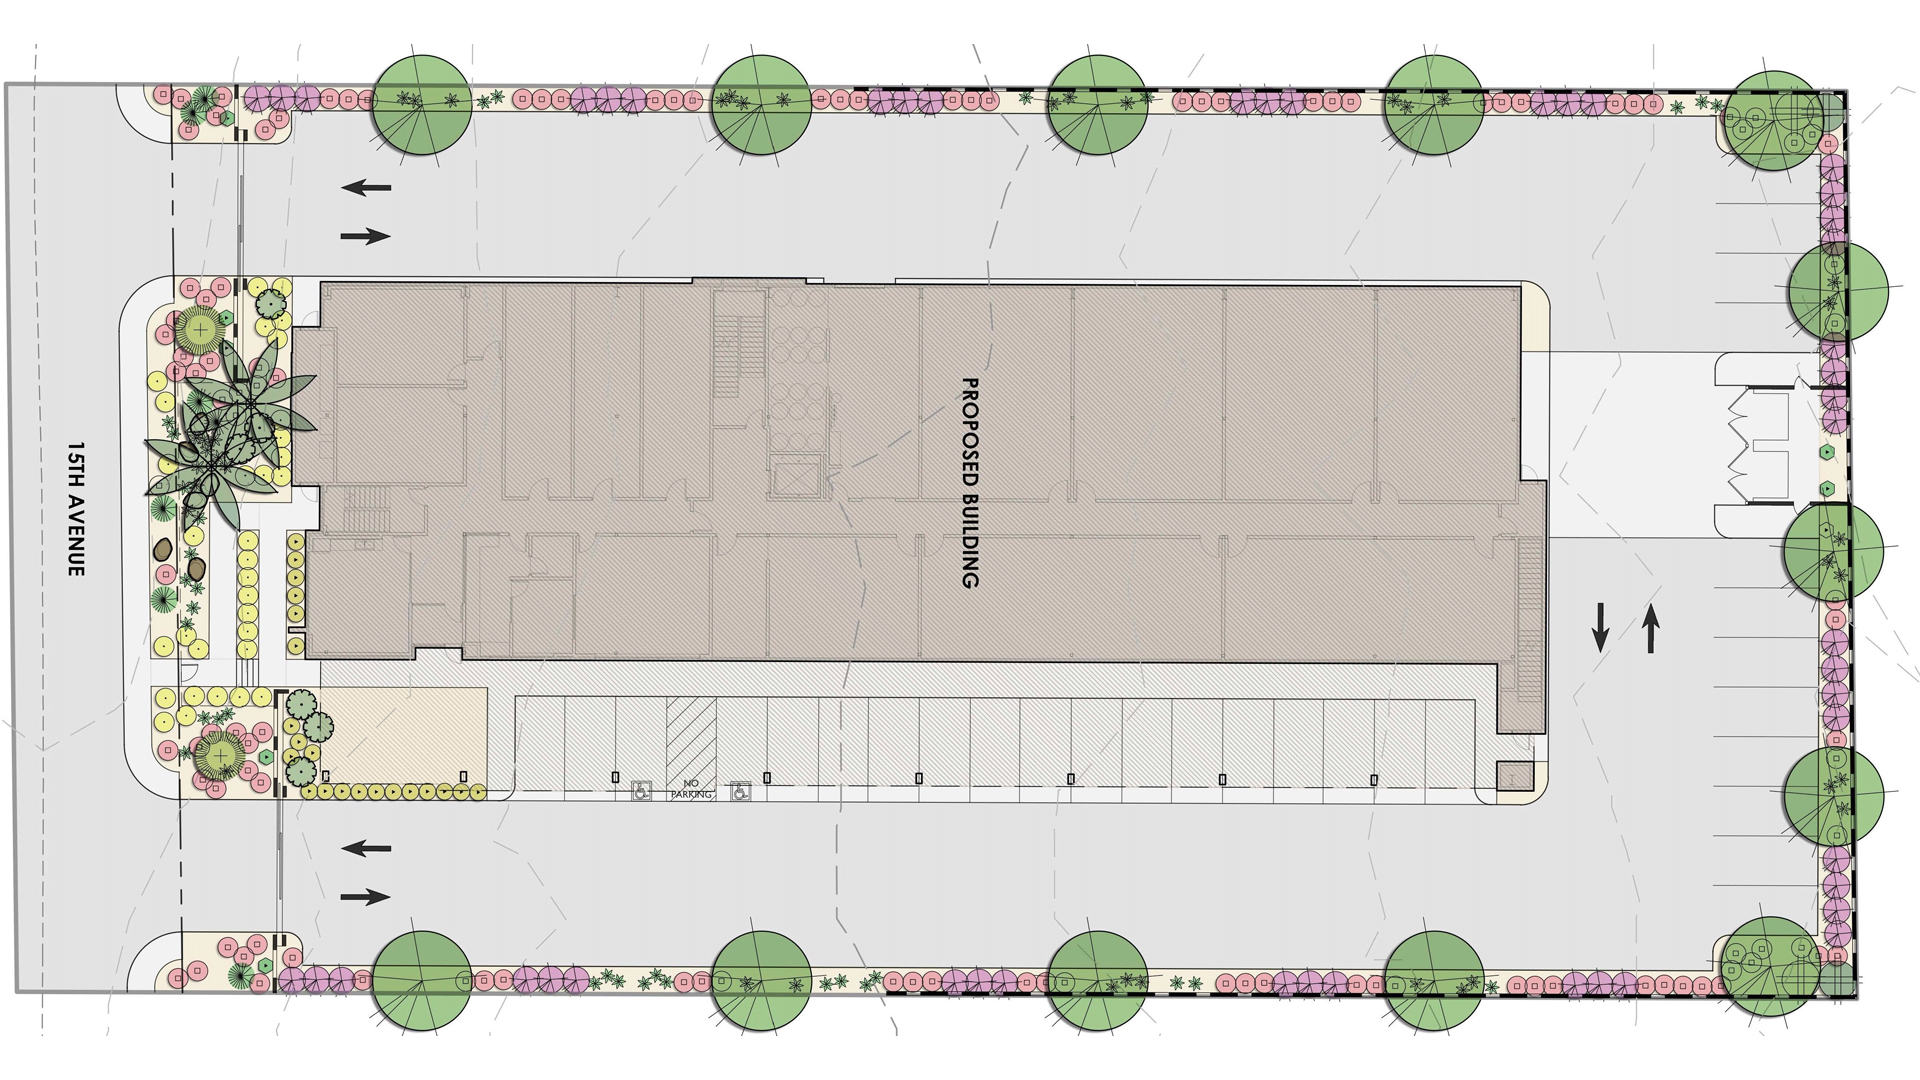 1.26 AC 15th Ave, Redshield Intl -PT Site Plan Map